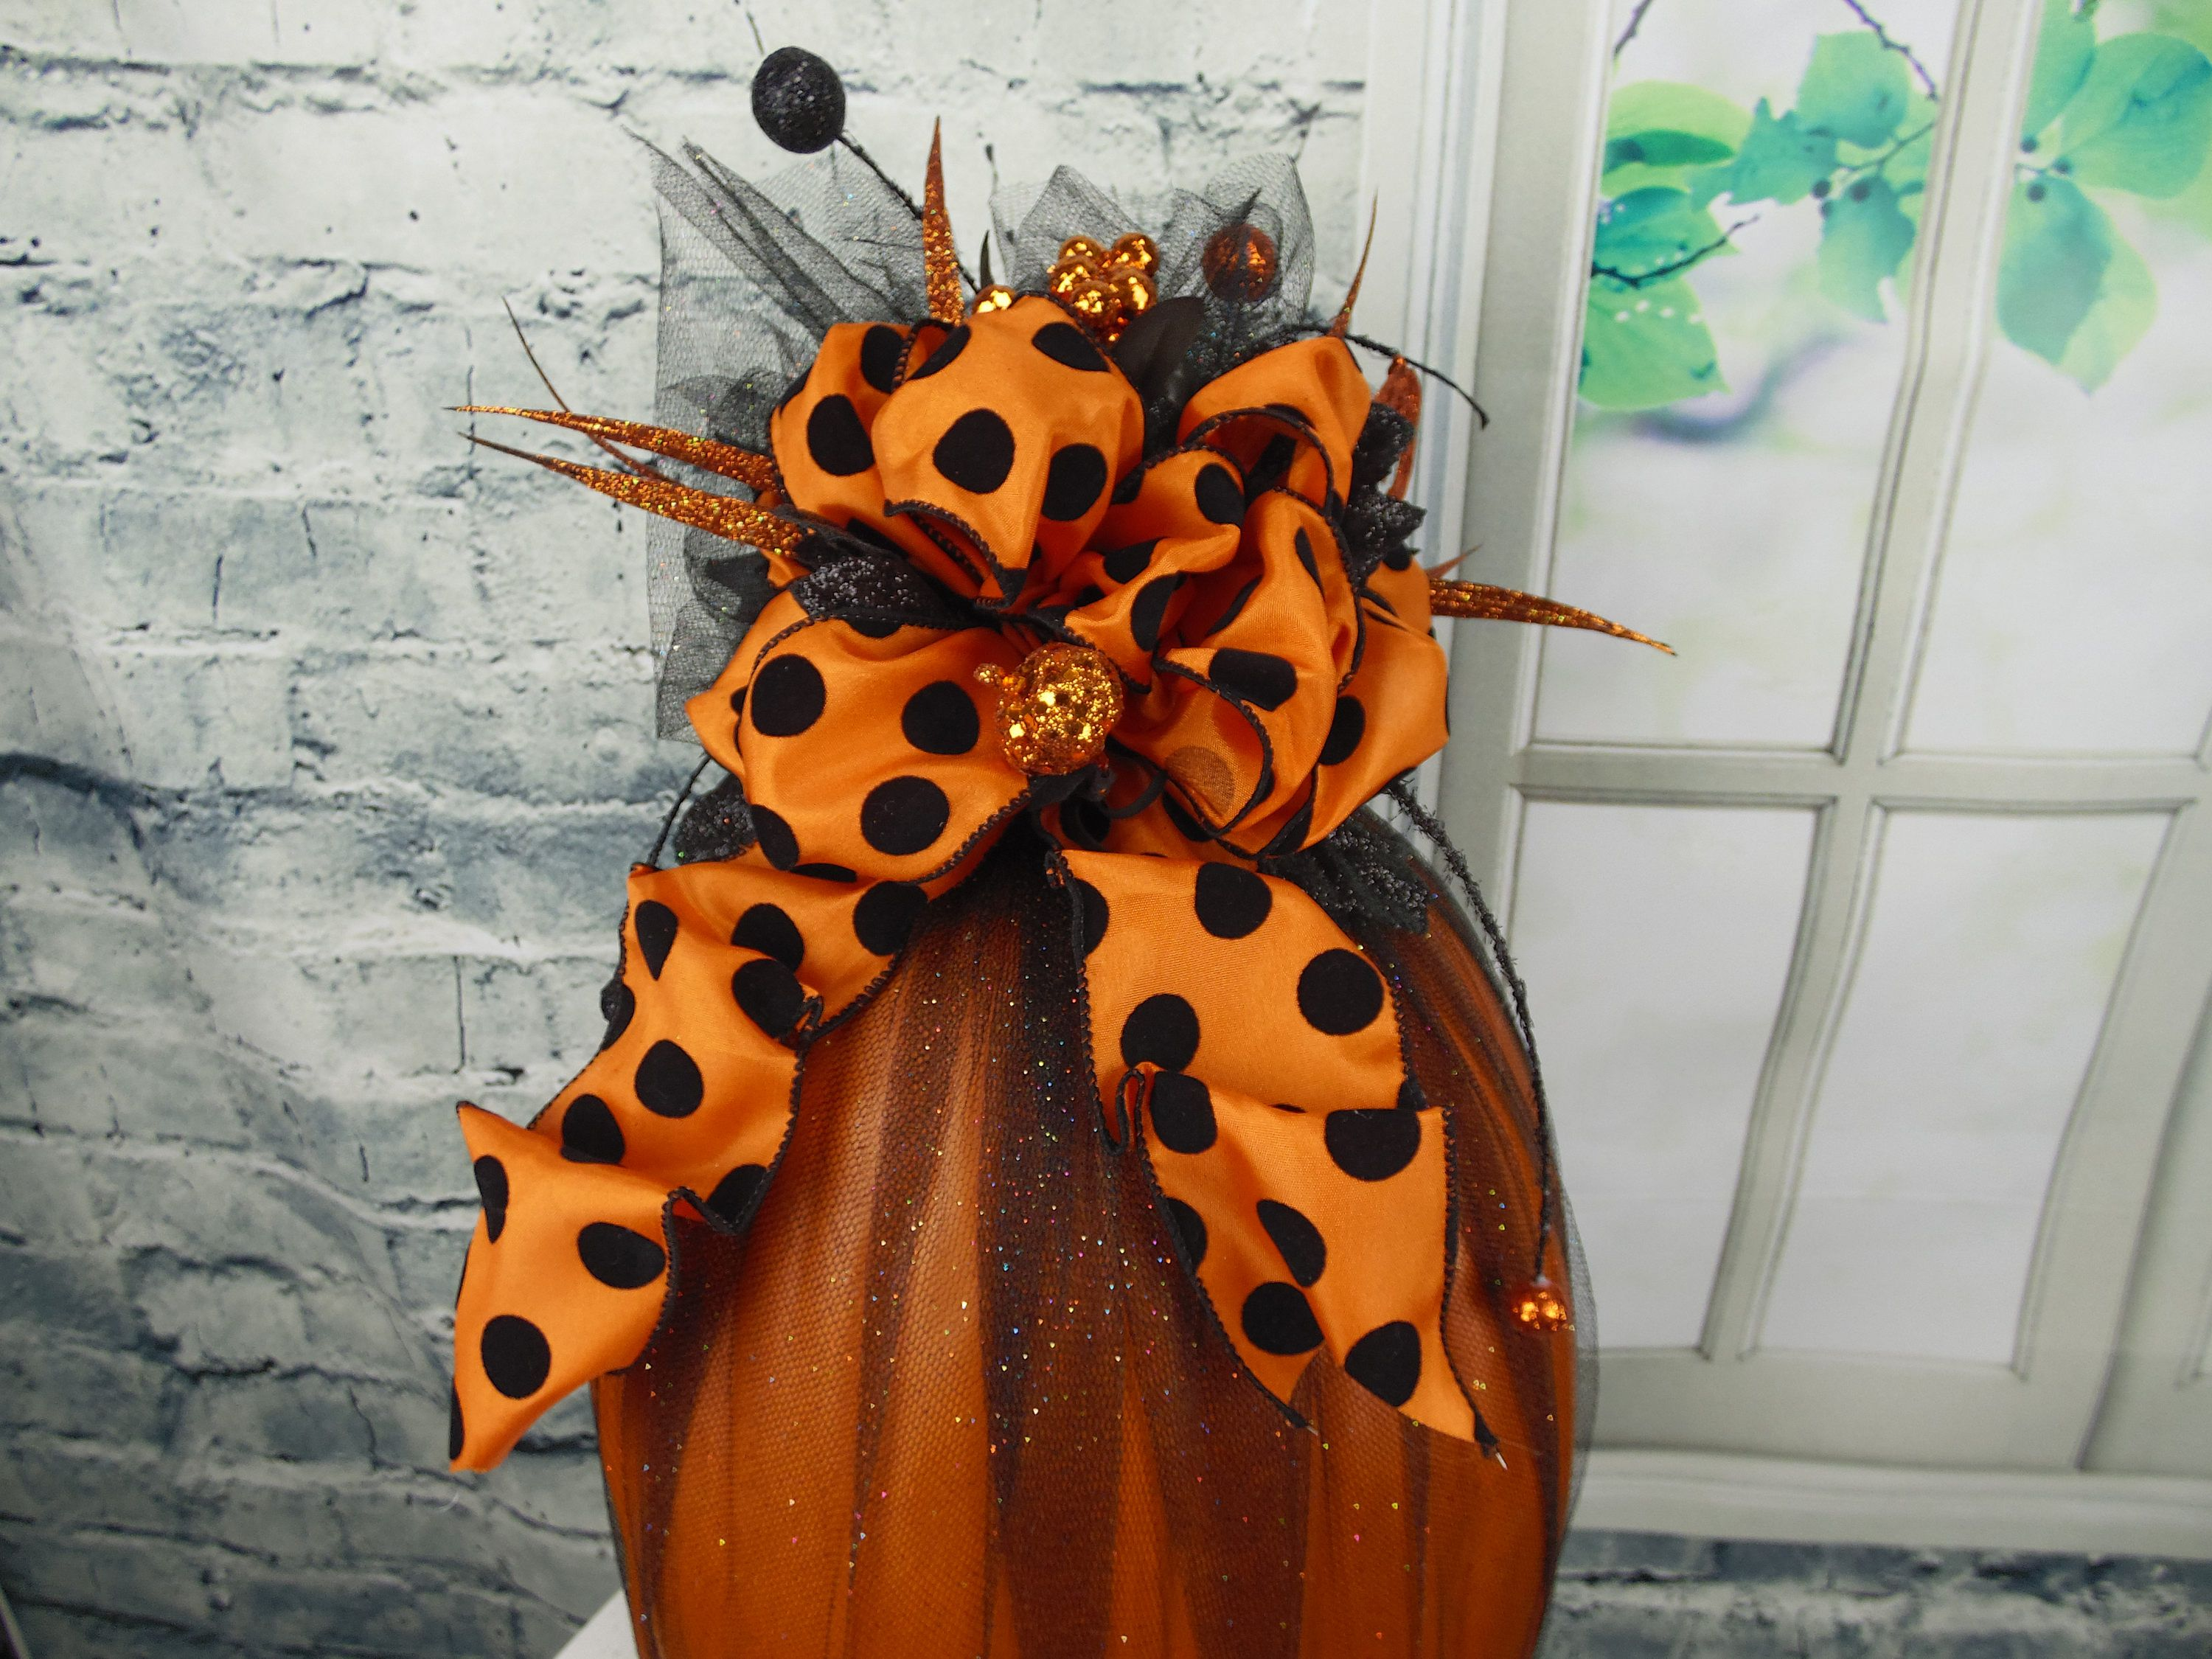 Tulle Pumpkin Decor, Whimsical Pumpkin Decor, Fabric Pumpkin - Whimsical Halloween Decorations